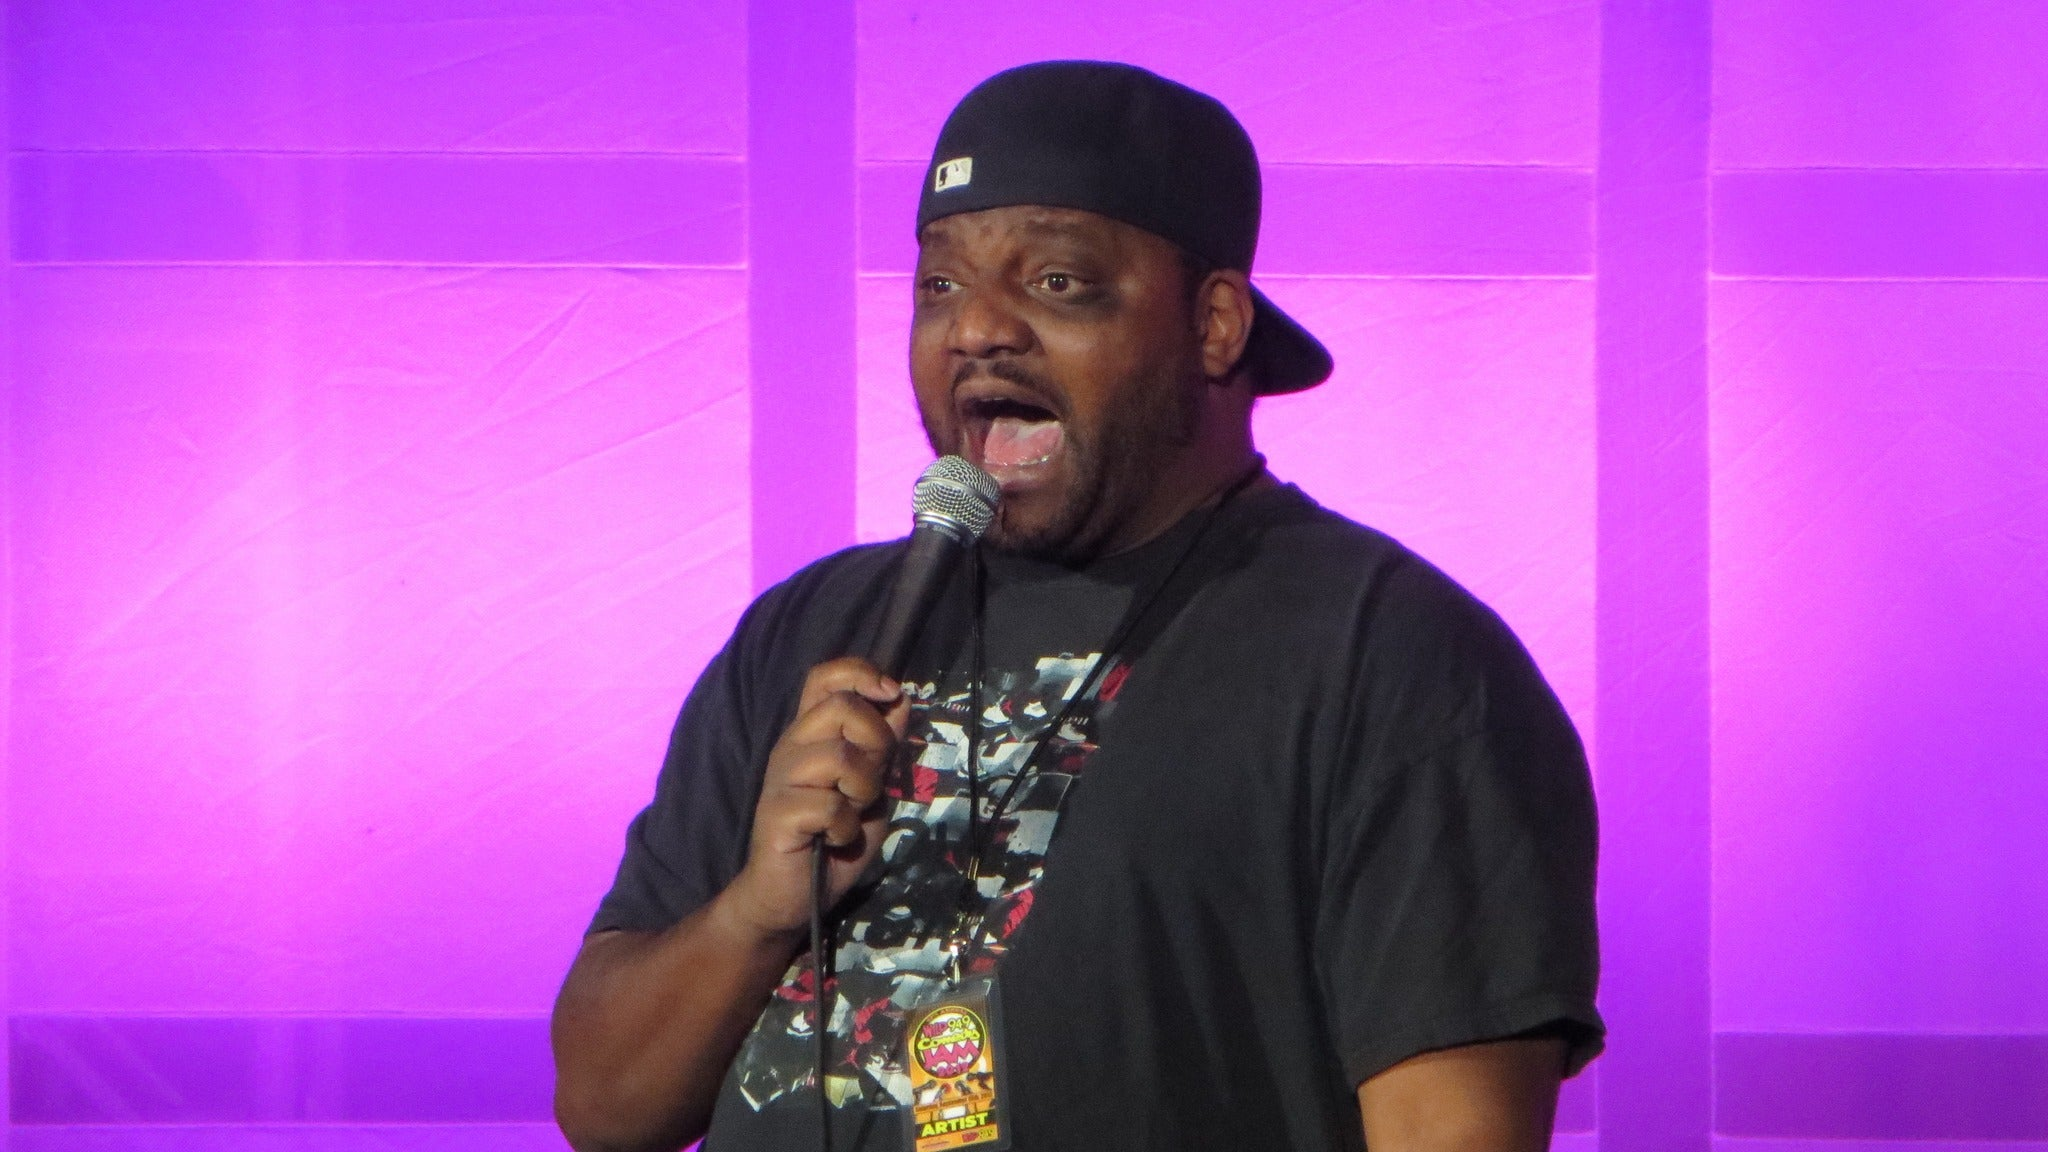 Aries Spears at San Jose Improv